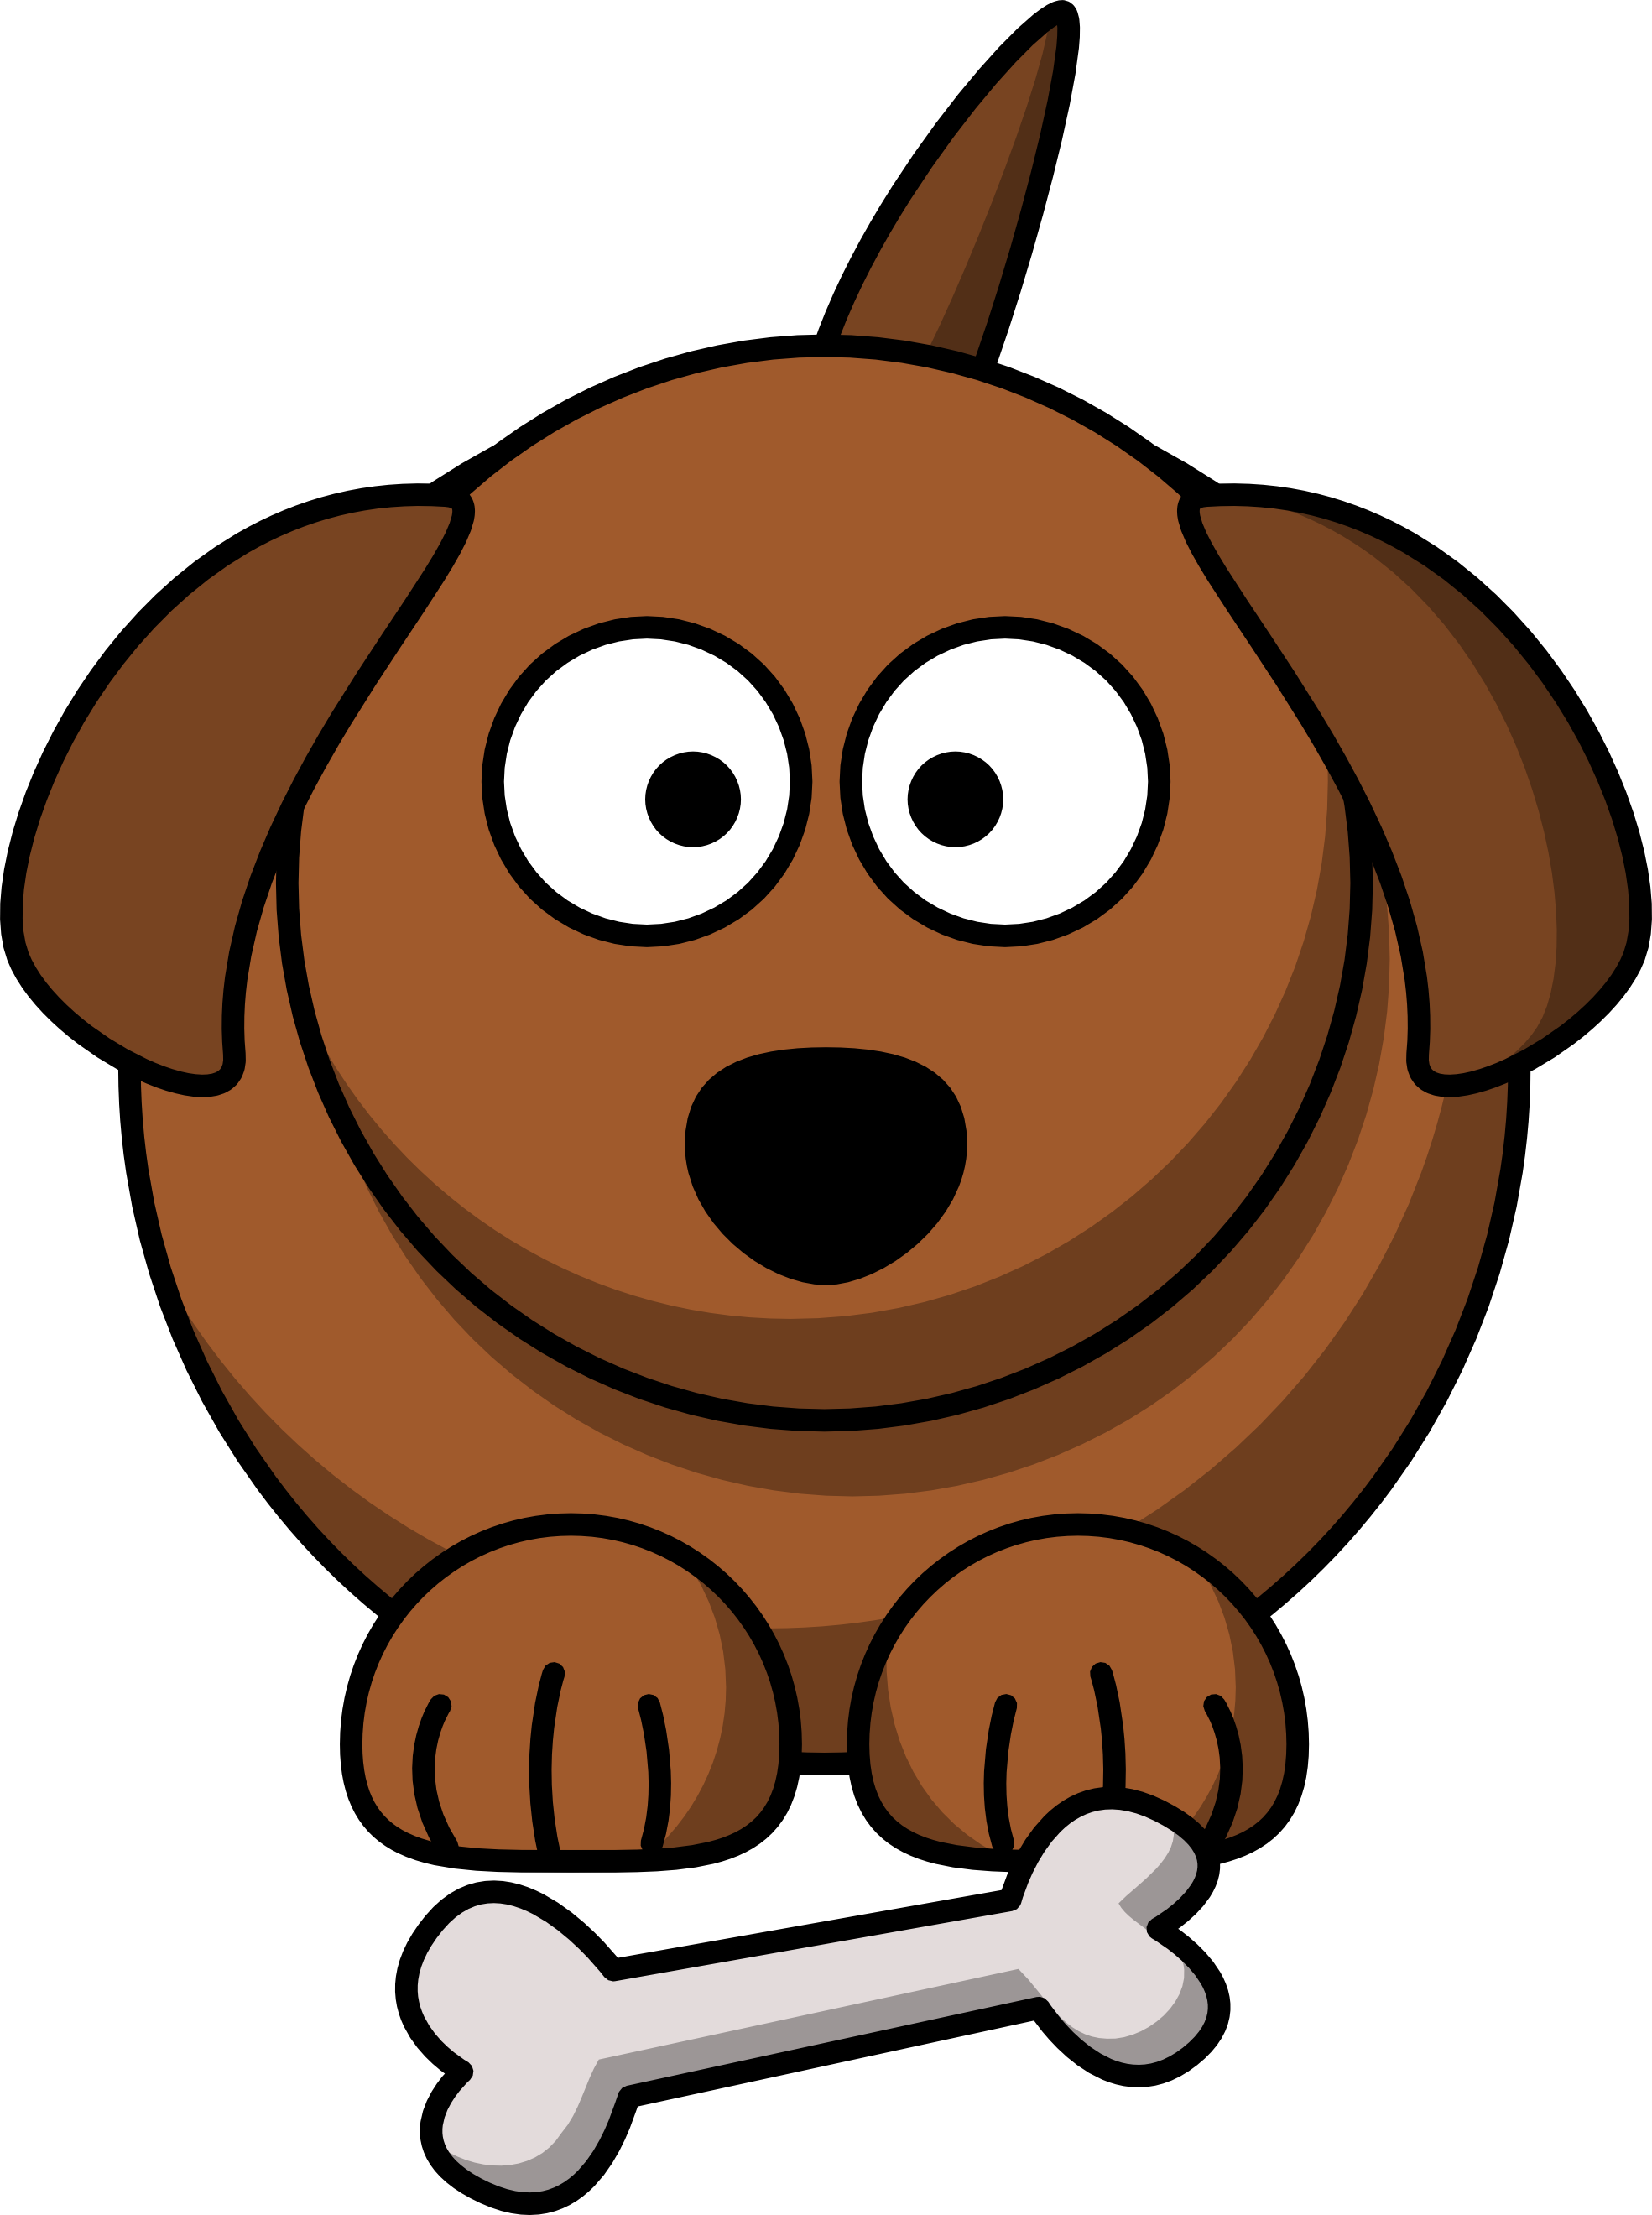 Dog Clip Art - Clipart library - Eskimo PNG Free